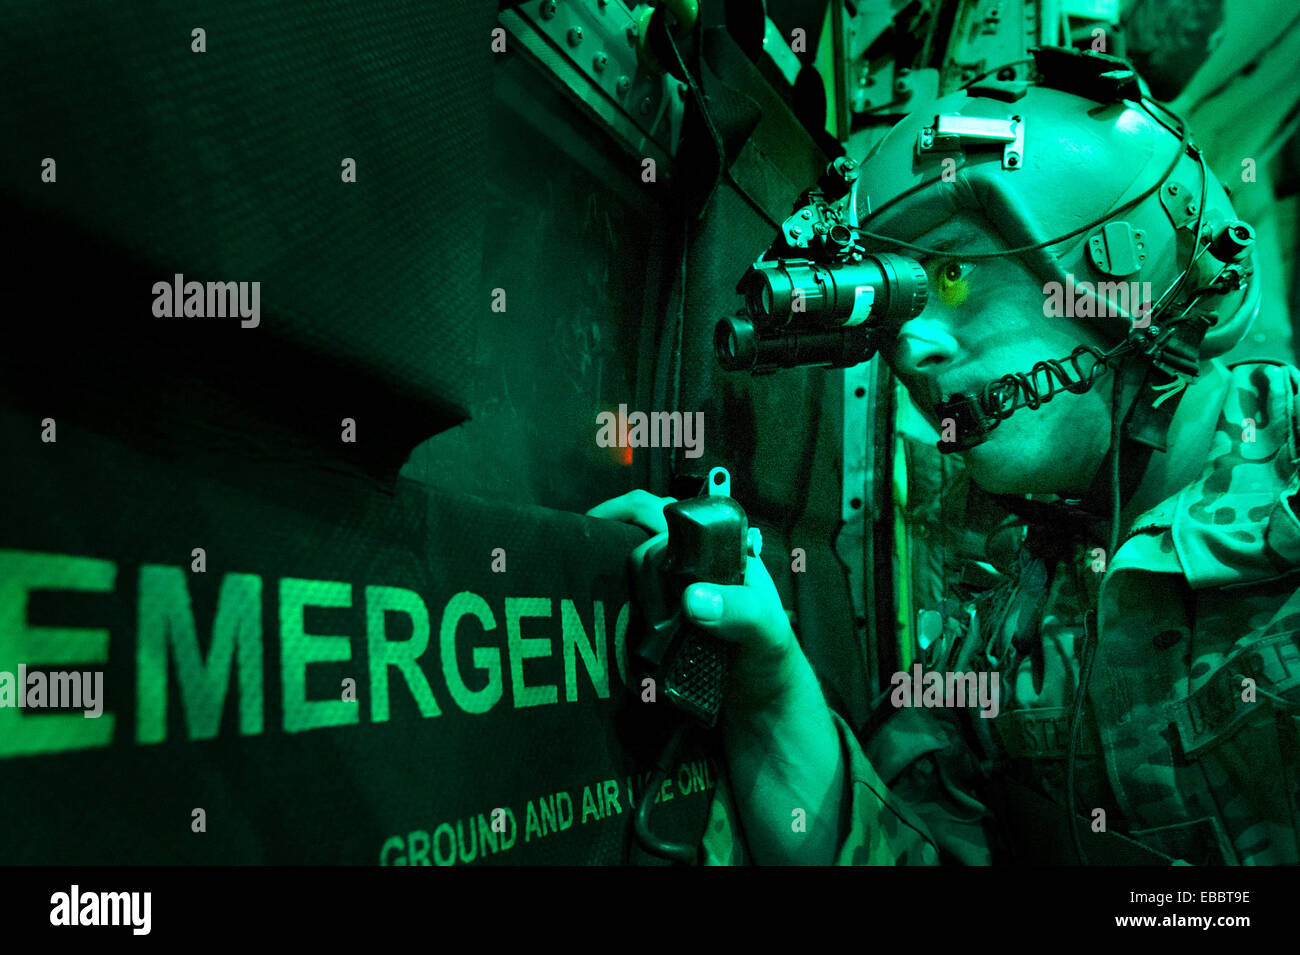 Senior Airman Larry Webster scans for potential threats using night vision goggles after completing a cargo airdrop - Stock Image